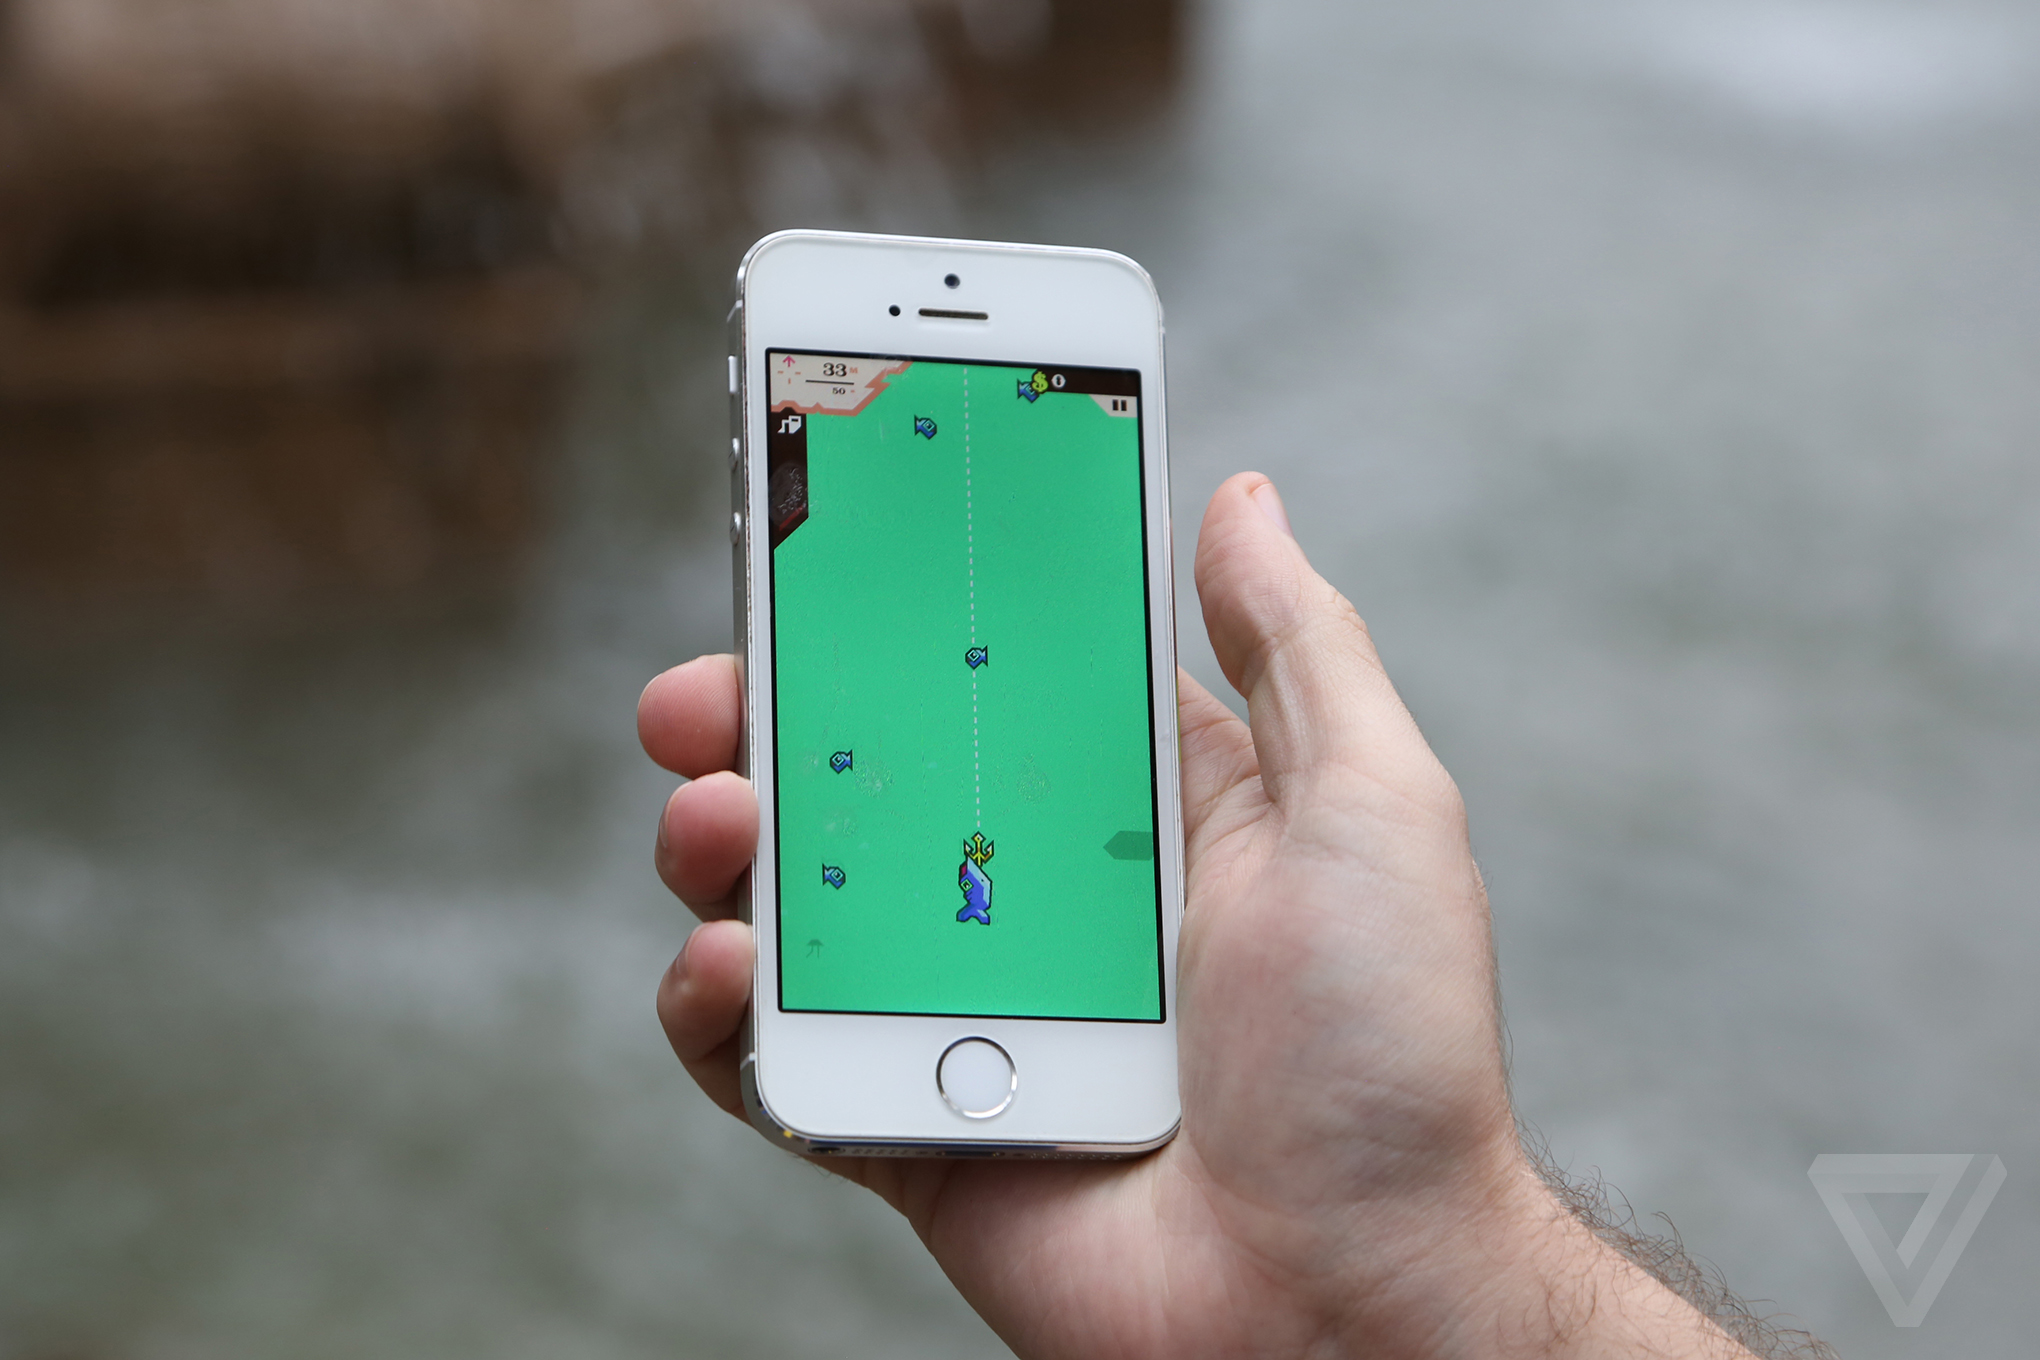 The 21 games that should be installed on every iPhone   The Verge Plants vs  Zombies 2  It s About Time